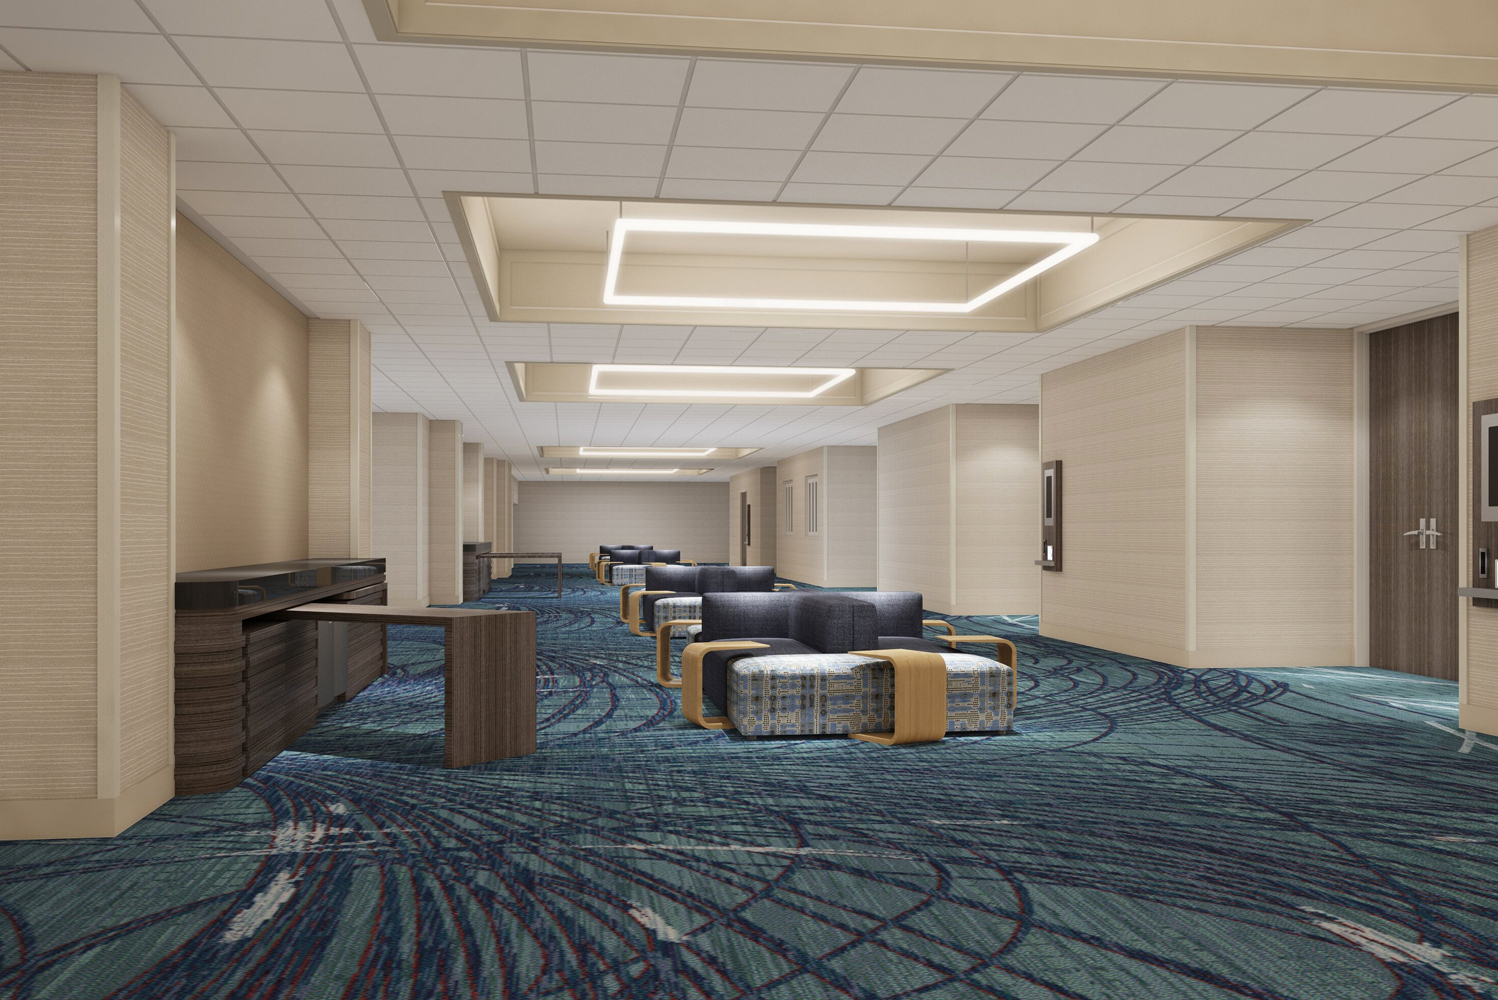 The LAX Marriott's redesigned ballrooms and pre-function spaces have California-inspired design. The property has over 29 meeting rooms, including the 12,320 square-foot Marquis Ballroom.